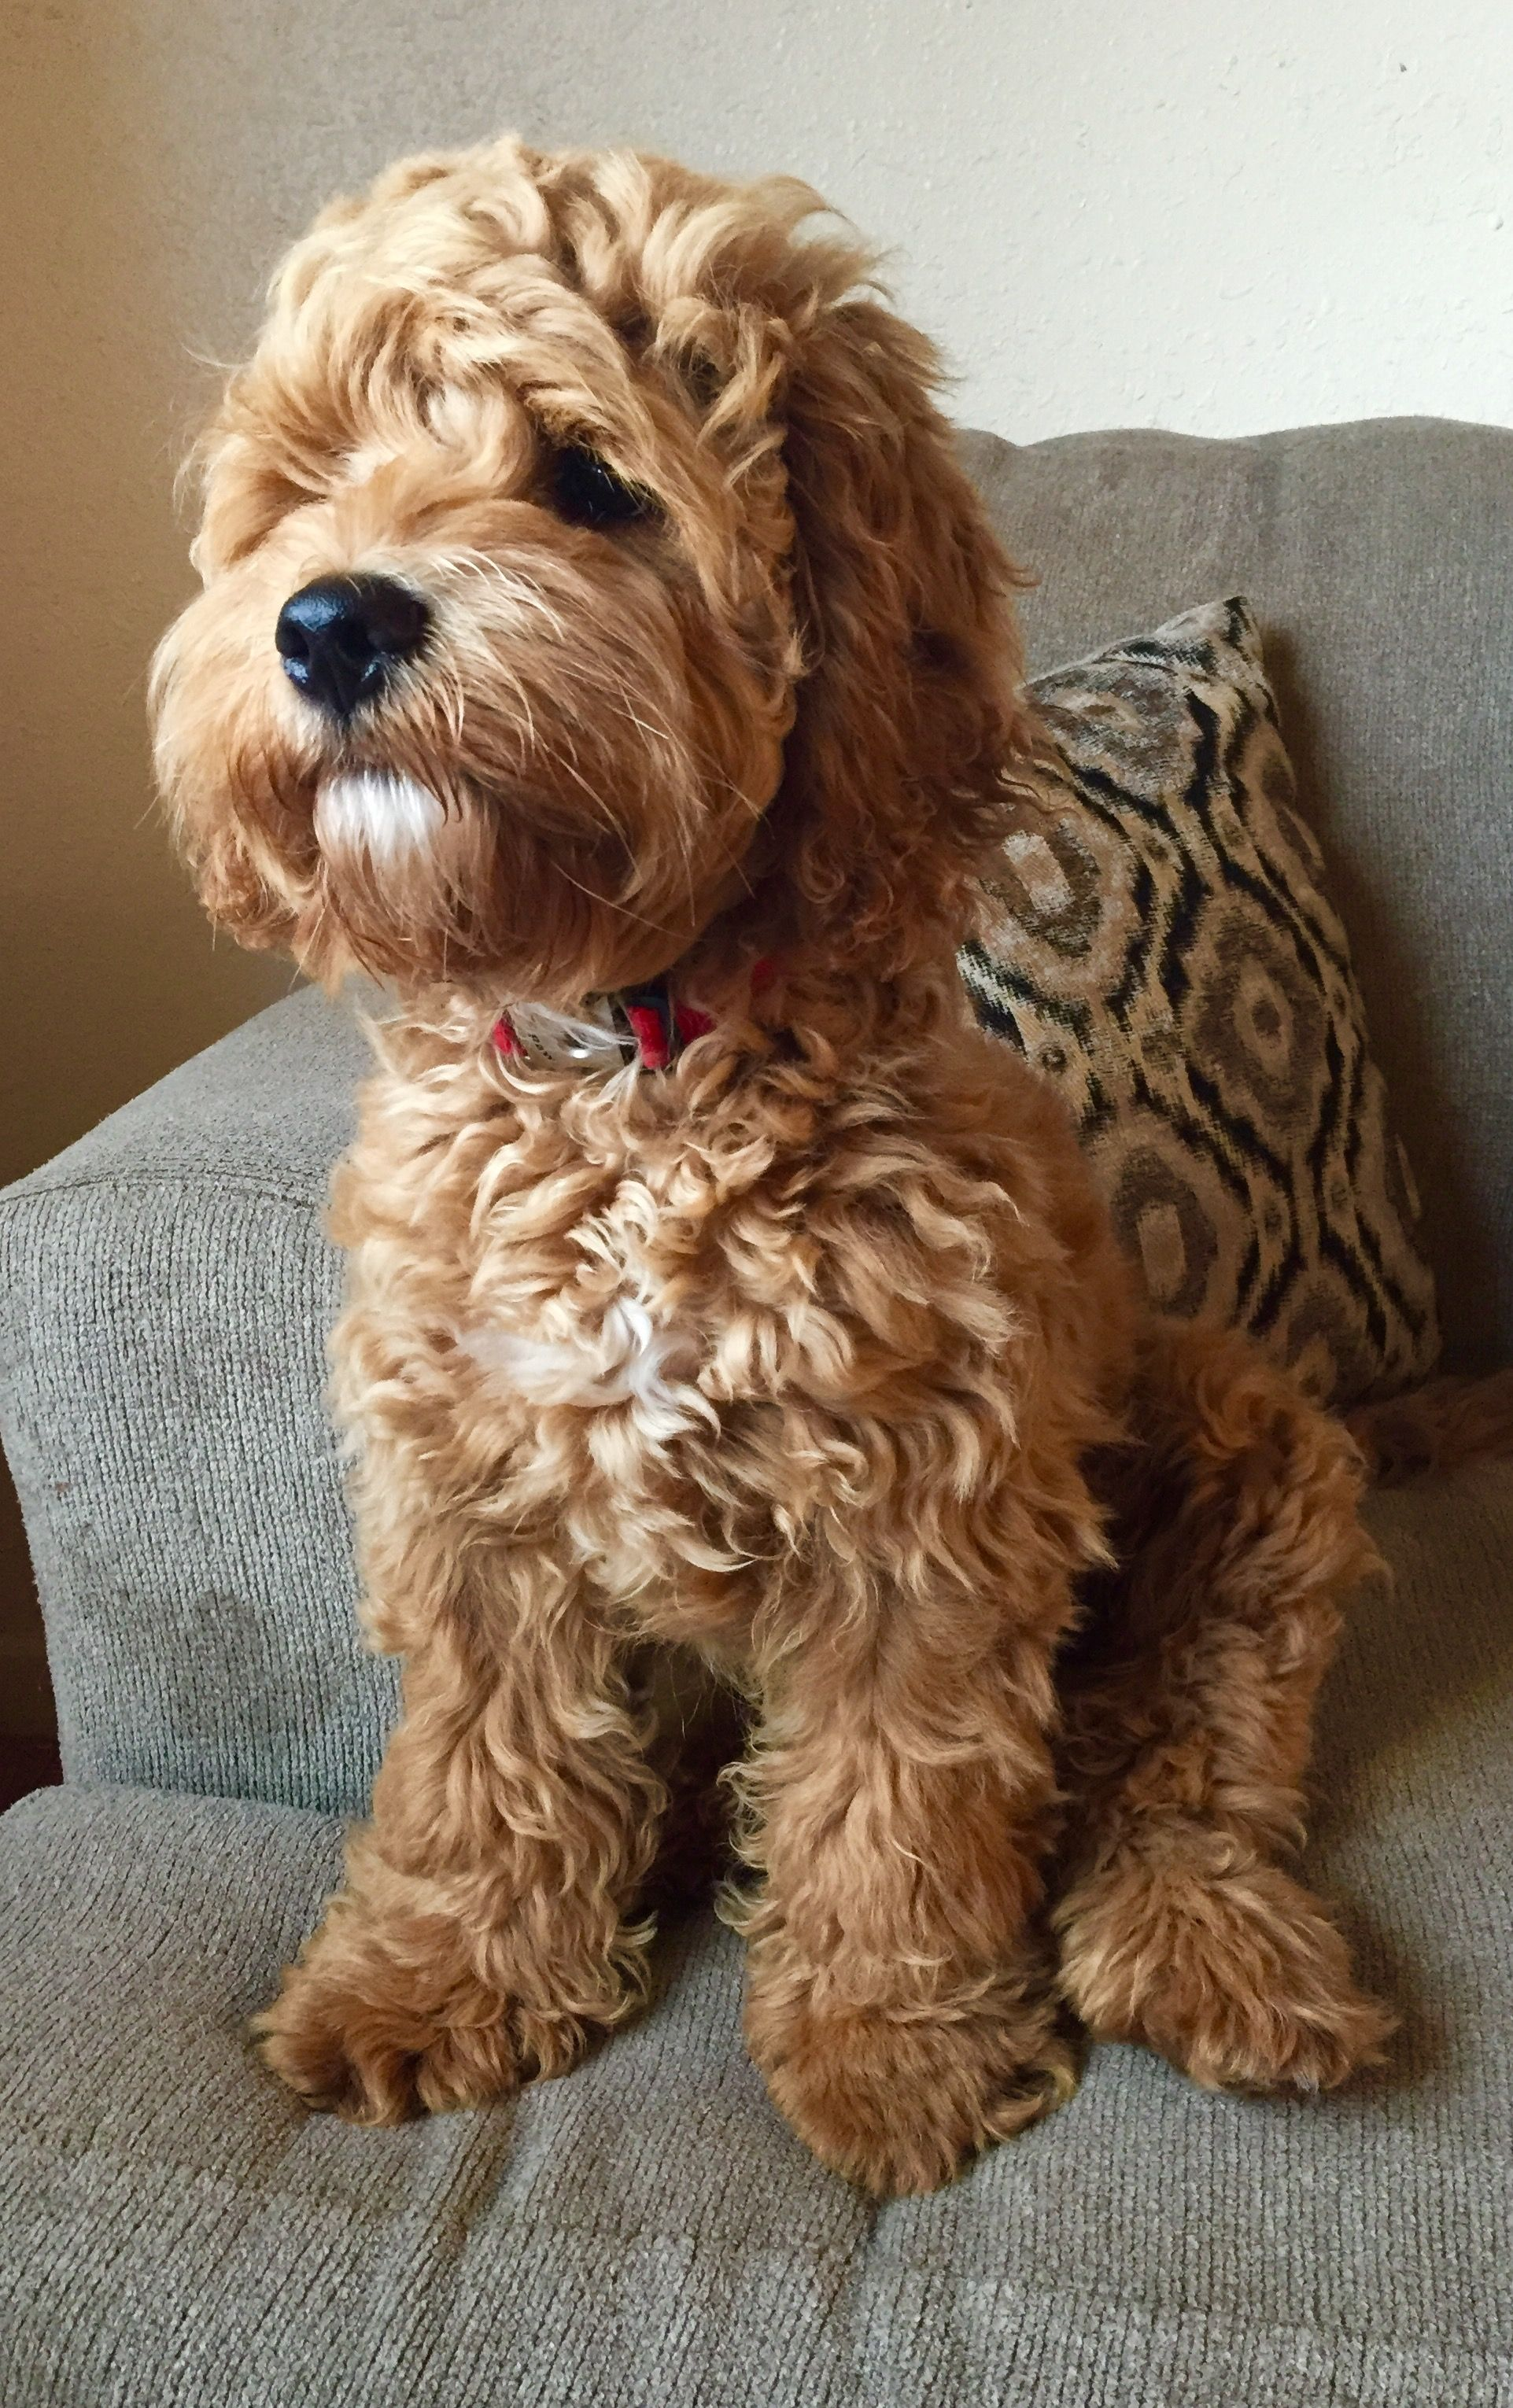 Chase 6 months old cockapoo   Chase-Cockapoo!   Pinterest ...